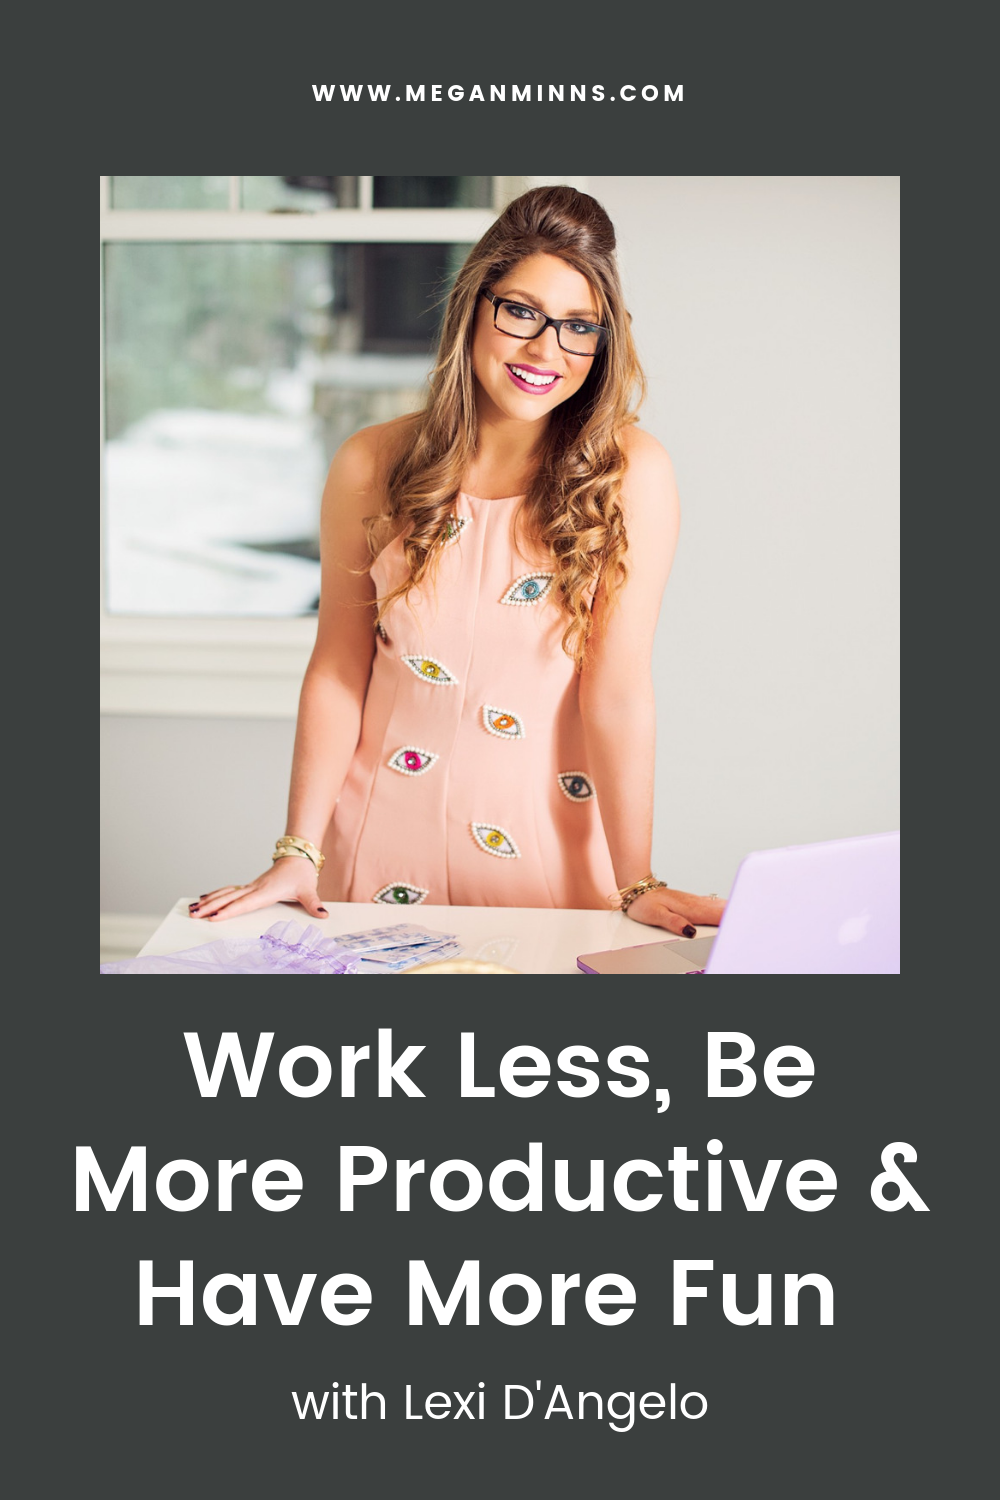 I'm so excited to have Lexi D'Angelo on the podcast!  In this episode, we cover how Lexi works in a state of flow which helps her be more productive and have more fun in her business and life. She's also giving all listeners access to her FREE Income Ceiling Training, so be sure to check that out!    READ THE FULL BLOG POST HERE:  https://meganminns.com/blog/work-less-lexi-dangelo